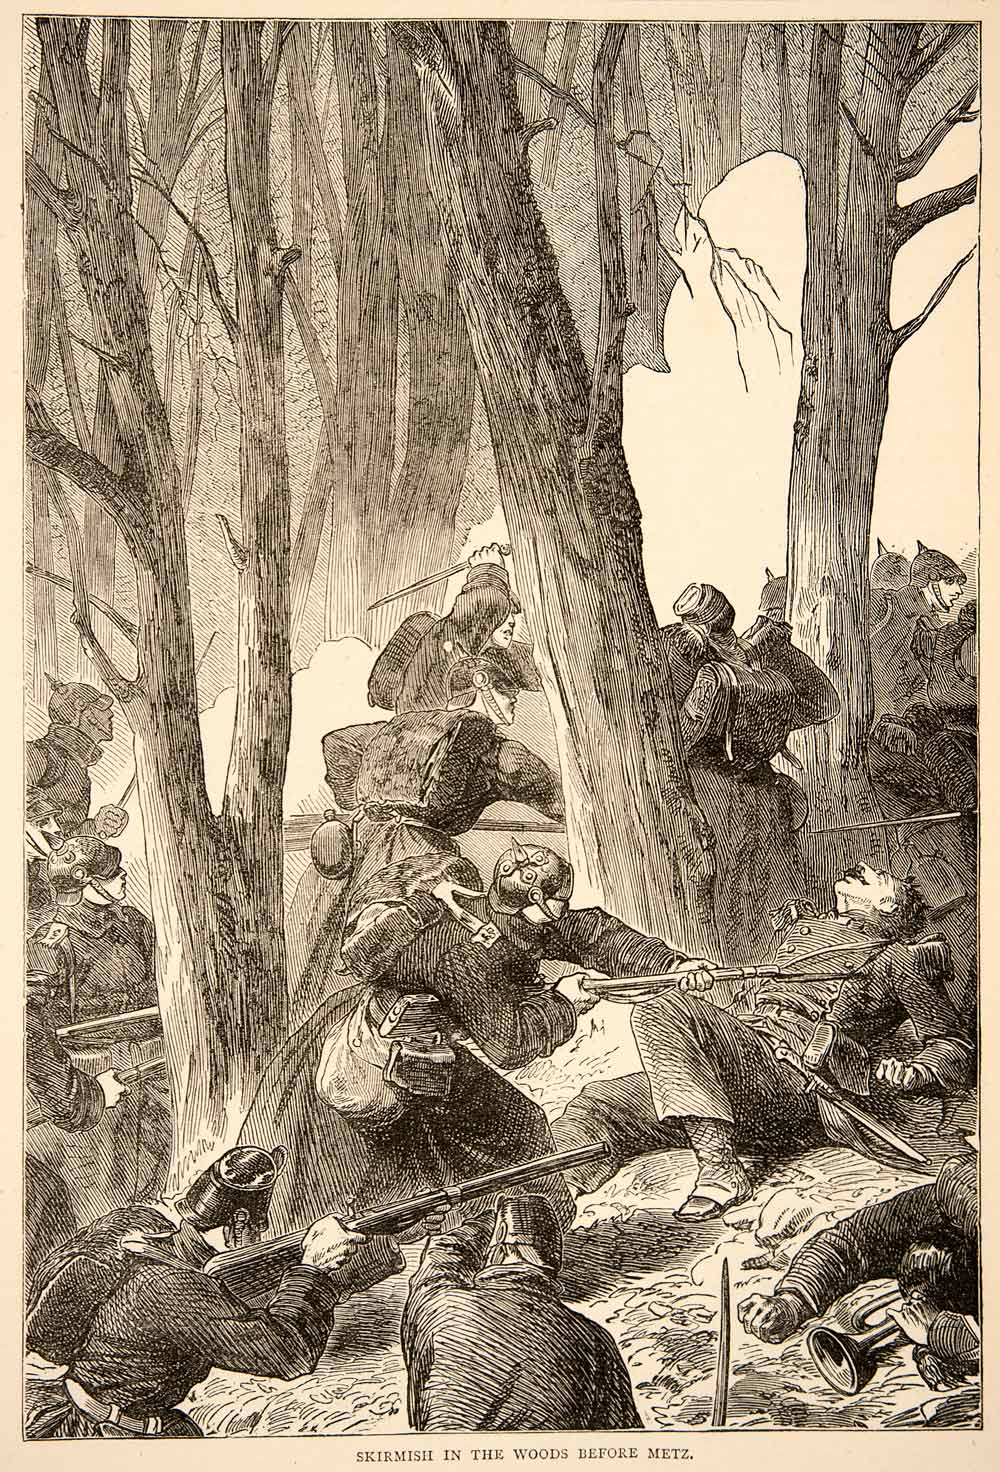 1874 Wood Engraving Skirmish Woods Metz Franco-Prussian War Soldiers Fight XEY1